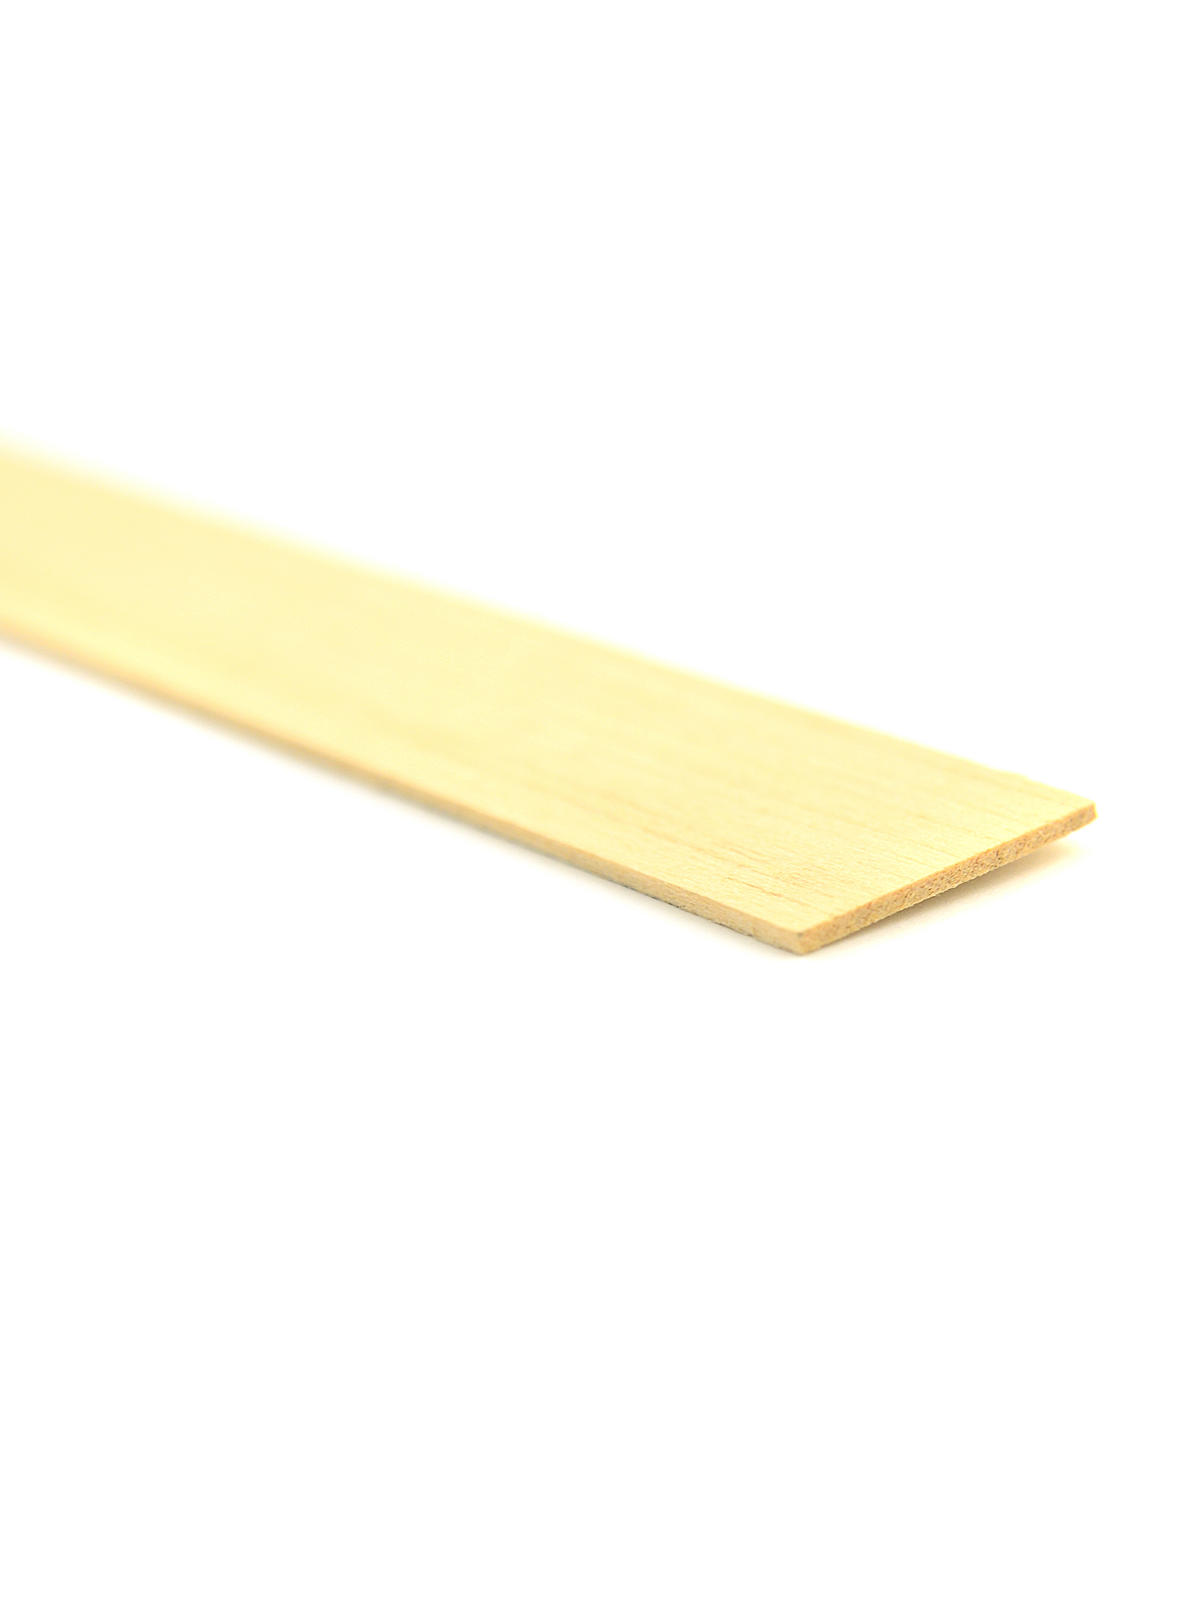 MIDWEST PRODUCTS 4102 BASSWOOD STRIP 1//16X1X24